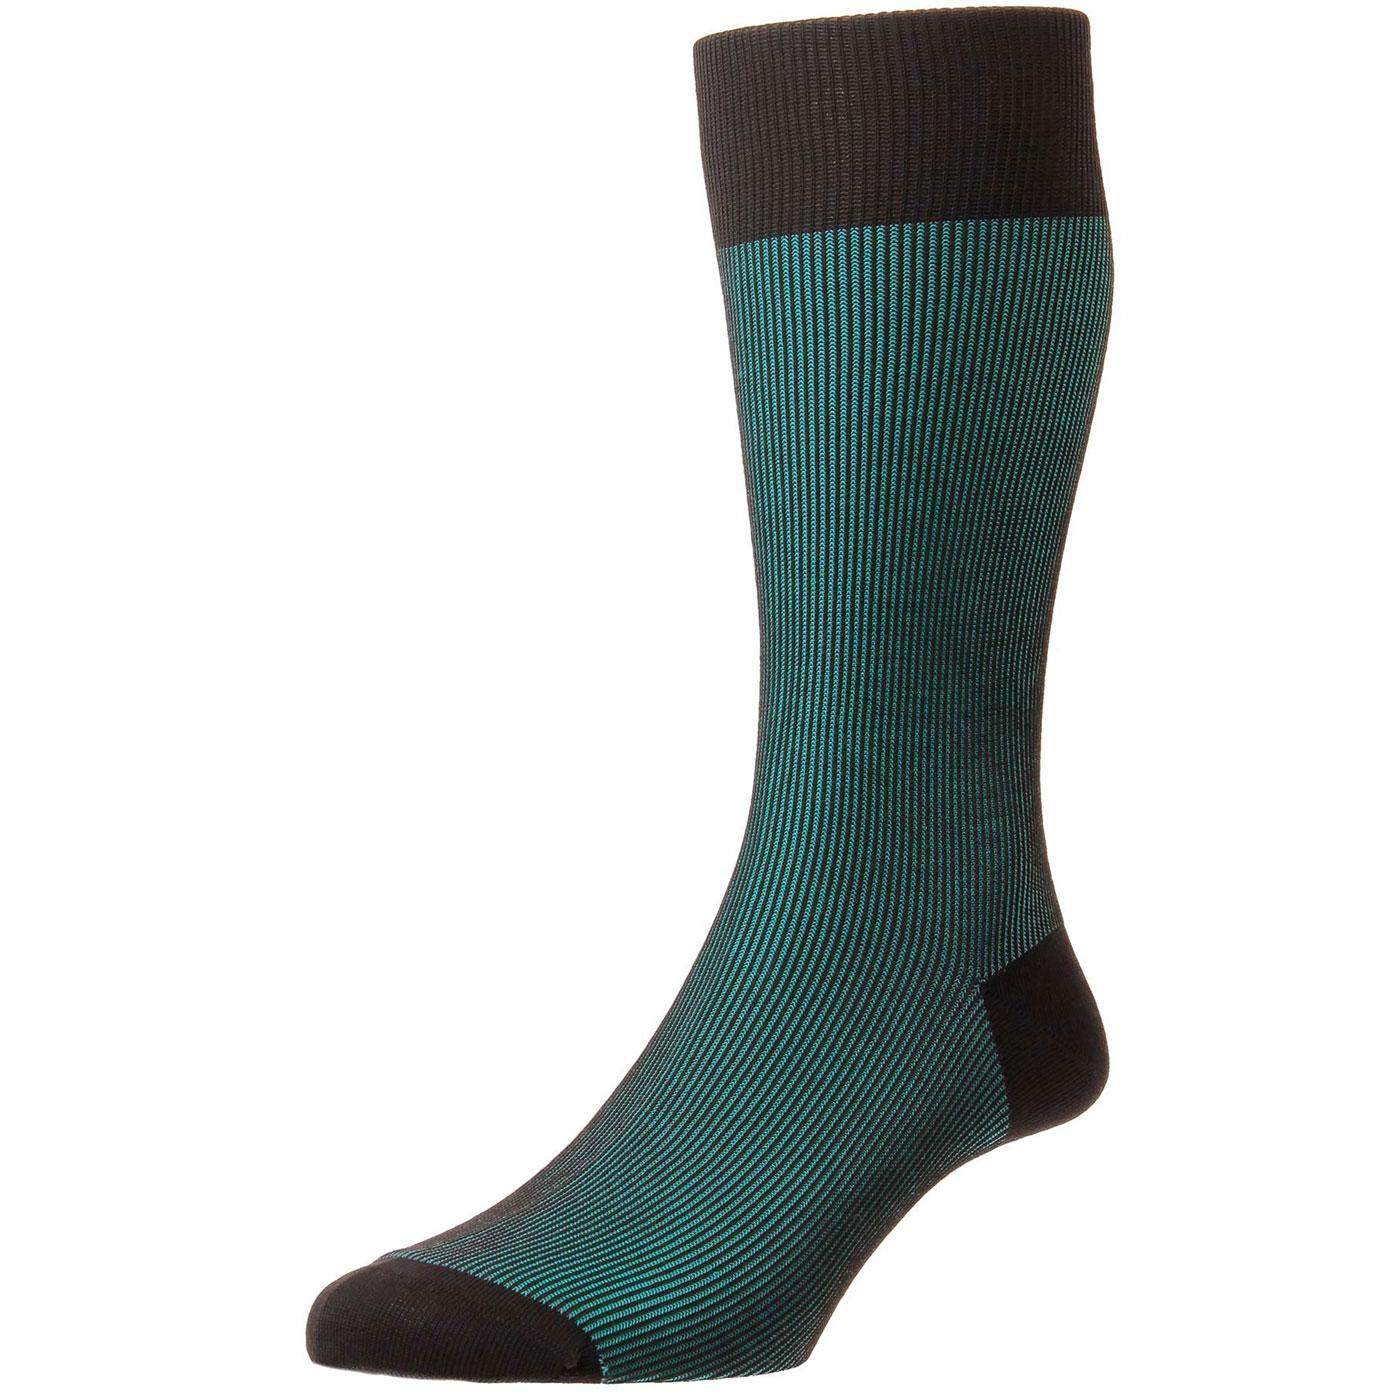 Pantherella Shadow Knit Socks in Green